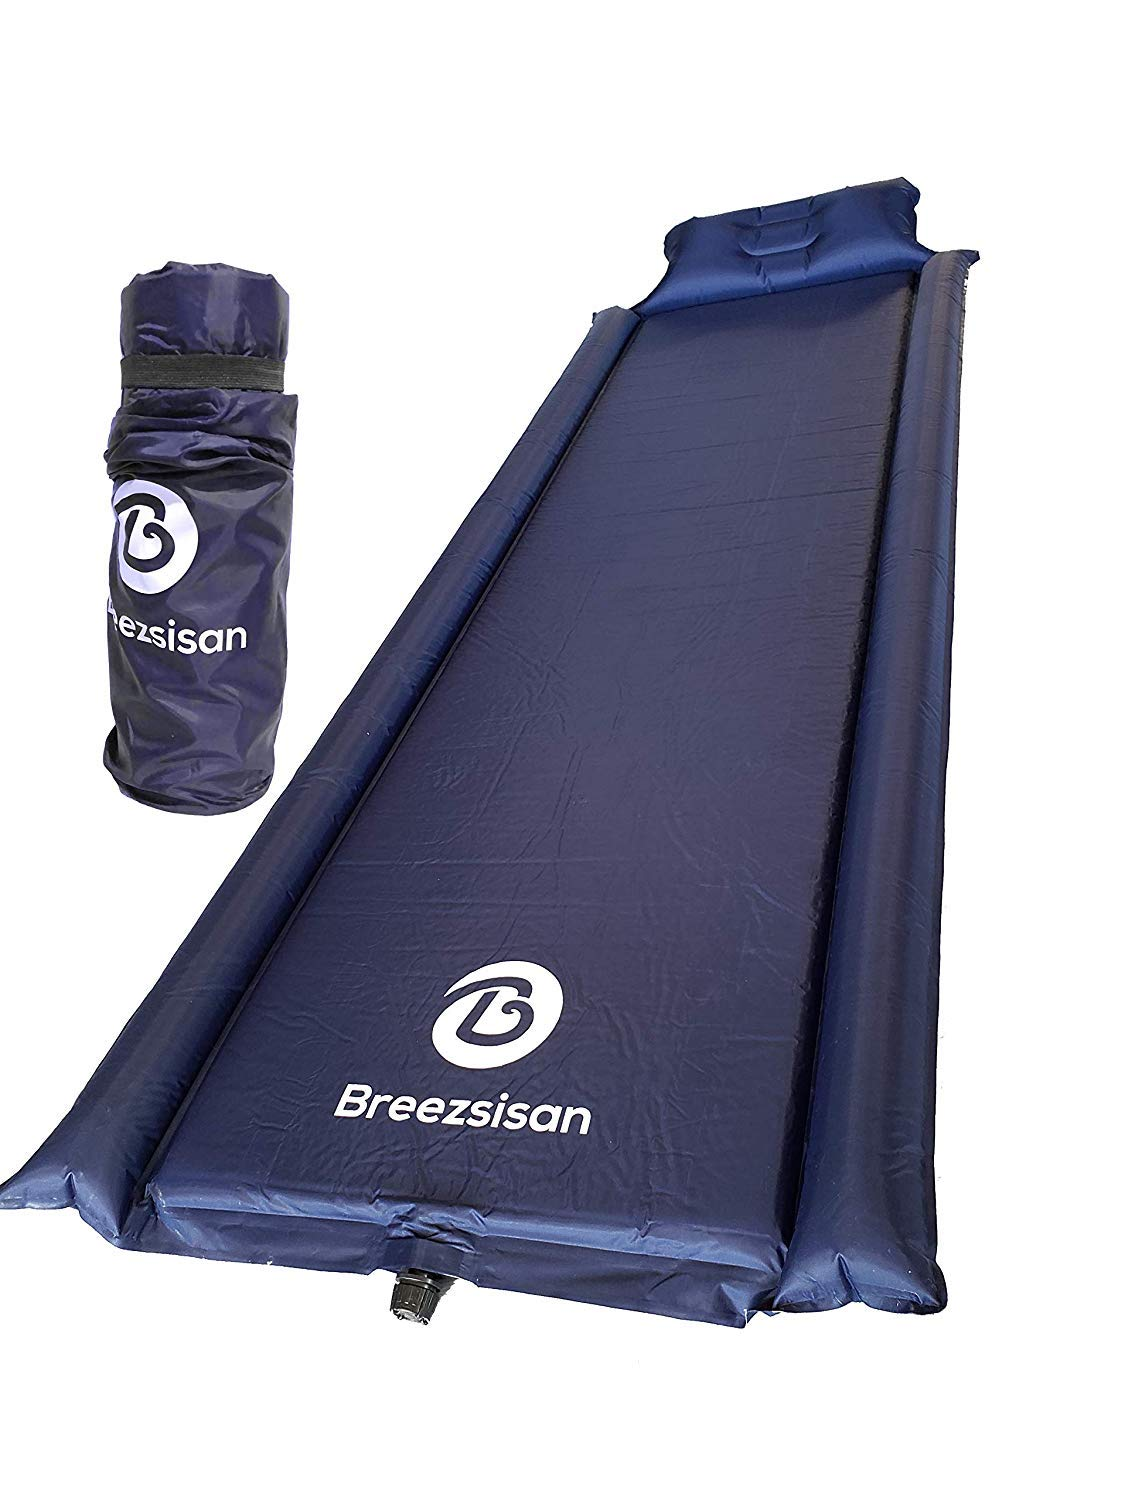 Breezsisan Sleeping Pads with Pillow, Armrest for: Camping Hiking Backpacking Floor. Self Inflating Outdoor Foam Sleeping Pad-Best Ideal -Comfortable-Camping pad-Inflatable Air Mattress by Breezsisan